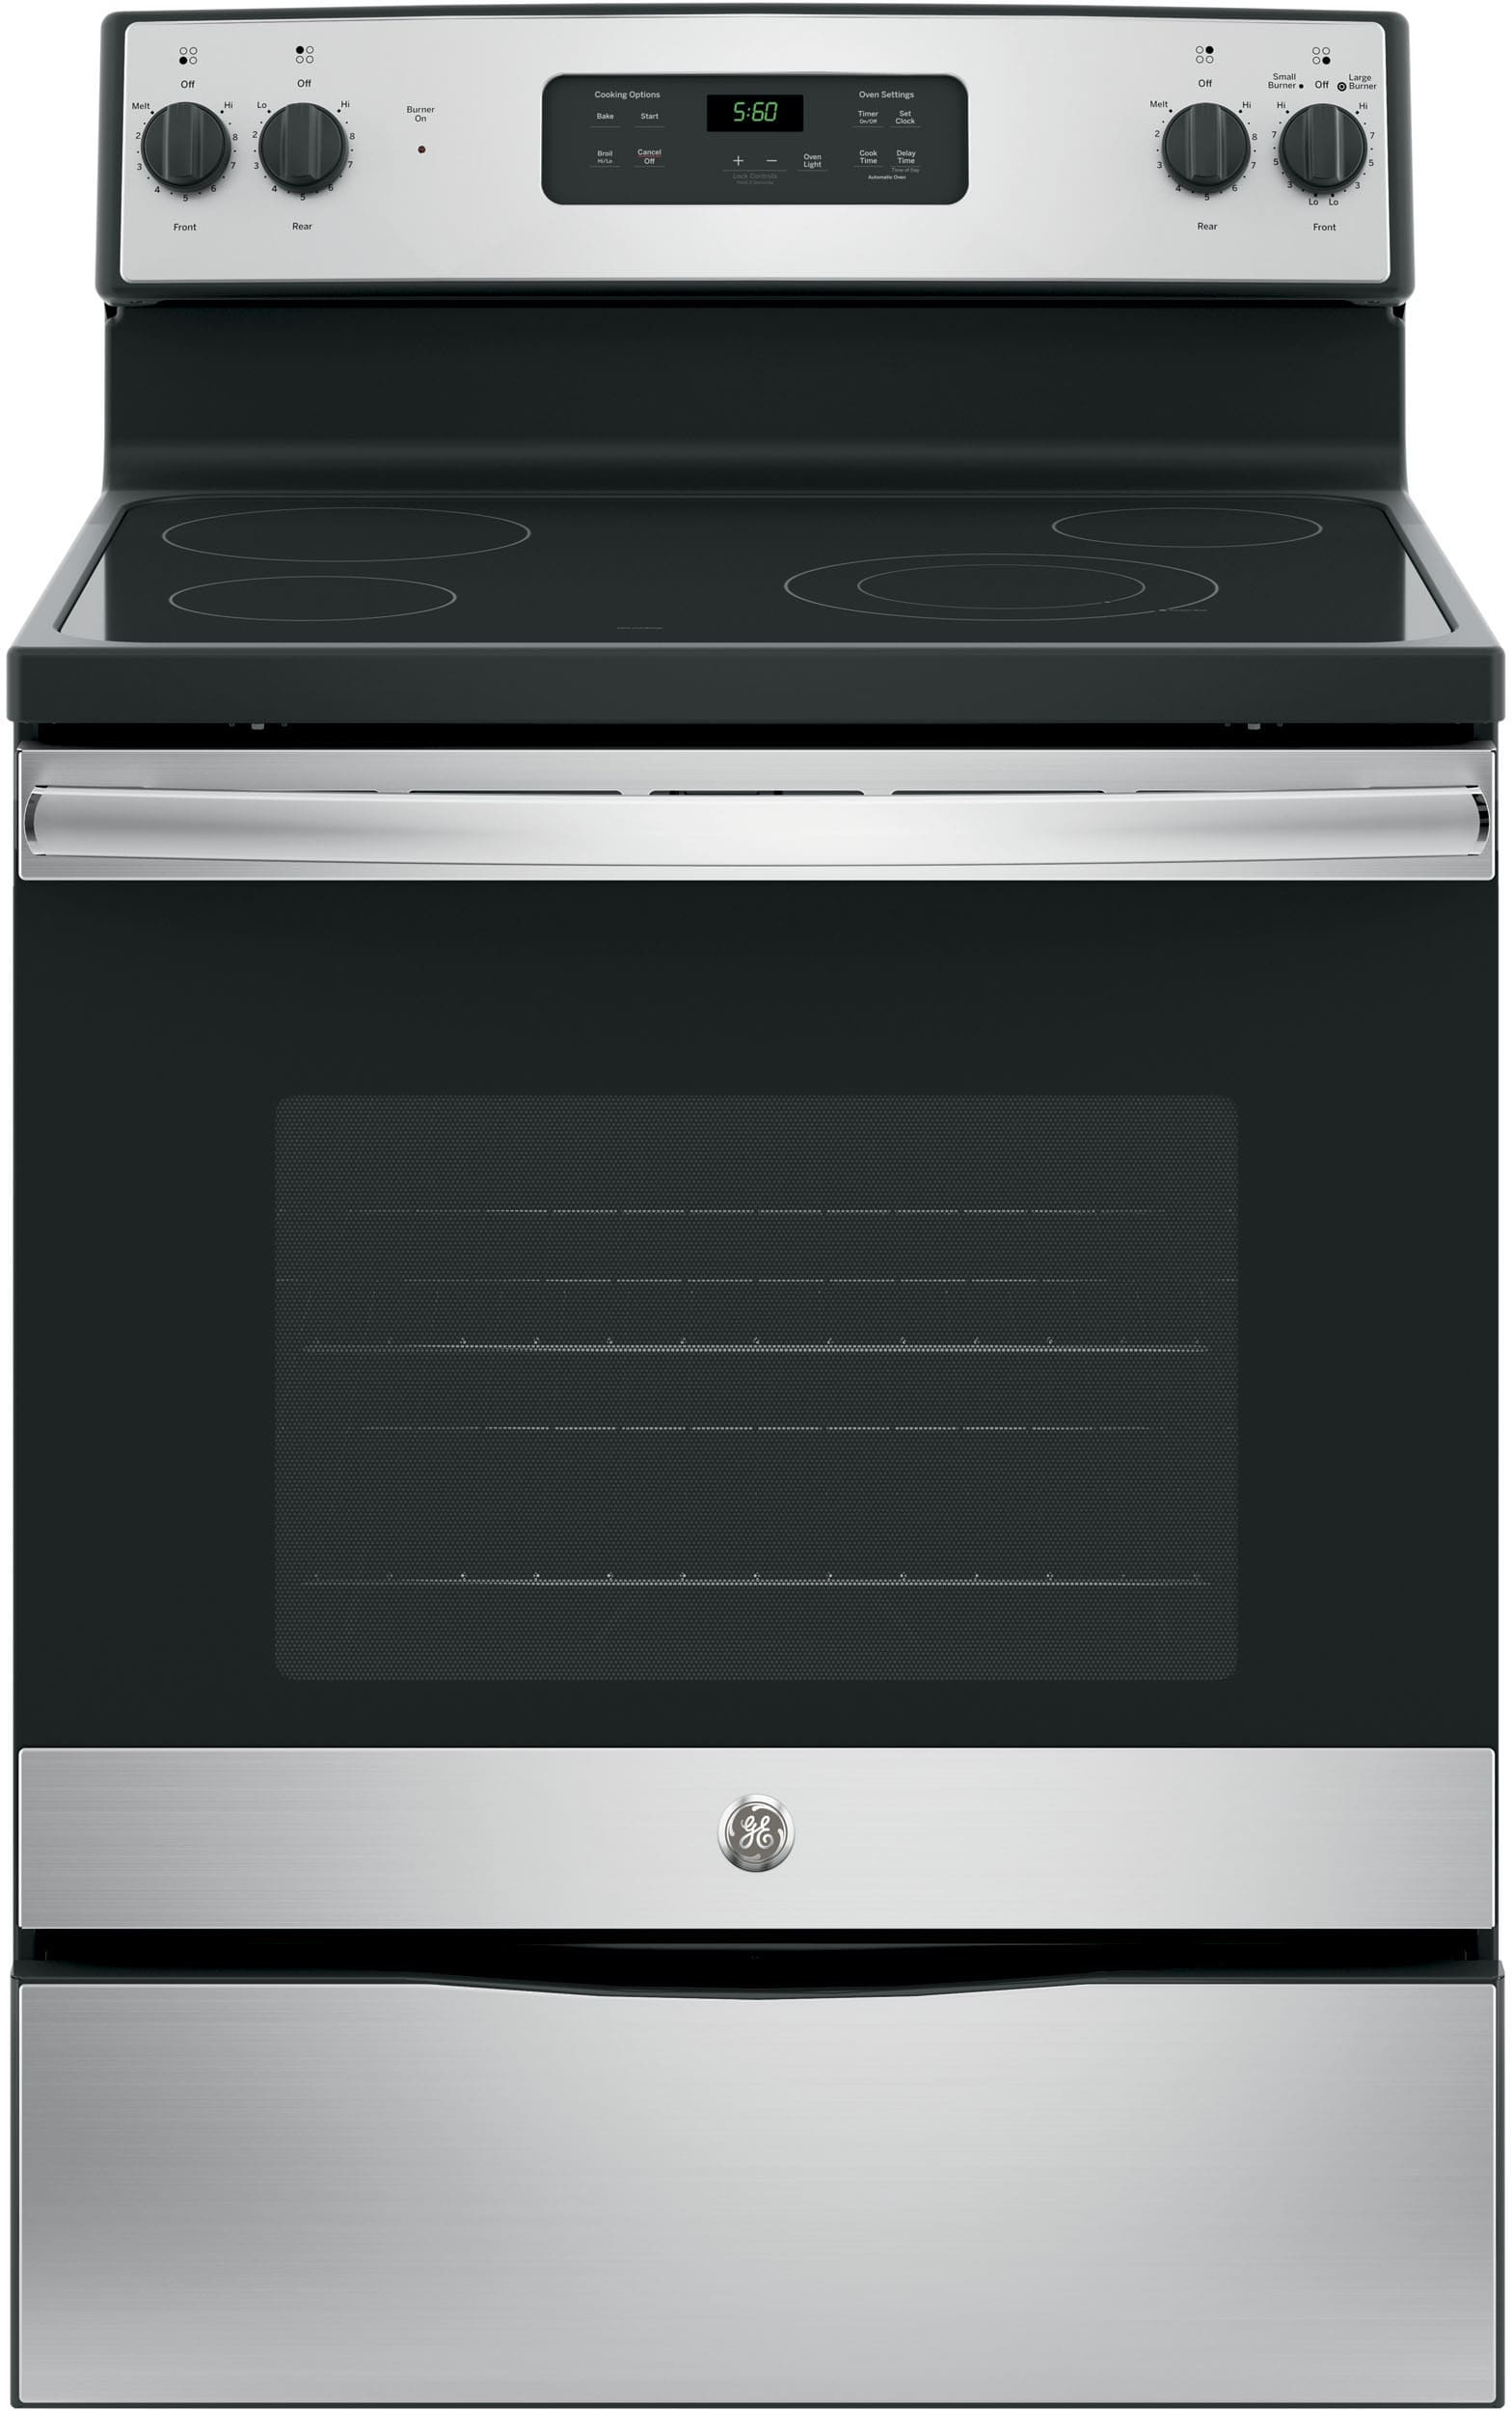 Ge Jbs60rkss 30 Inch Electric Range With Power Boil Burner